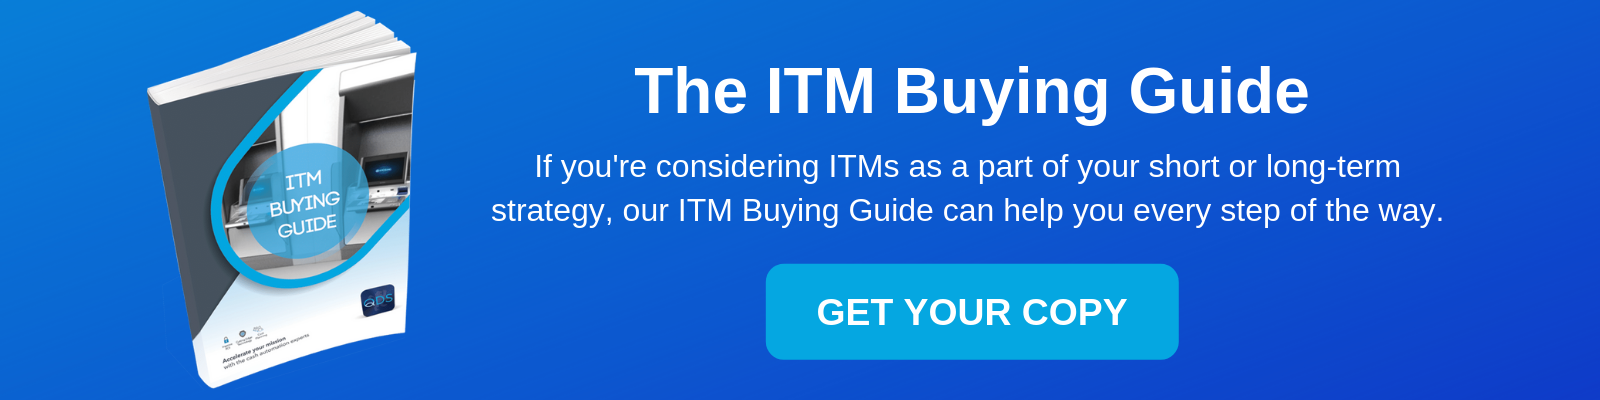 ITM Buying Guide